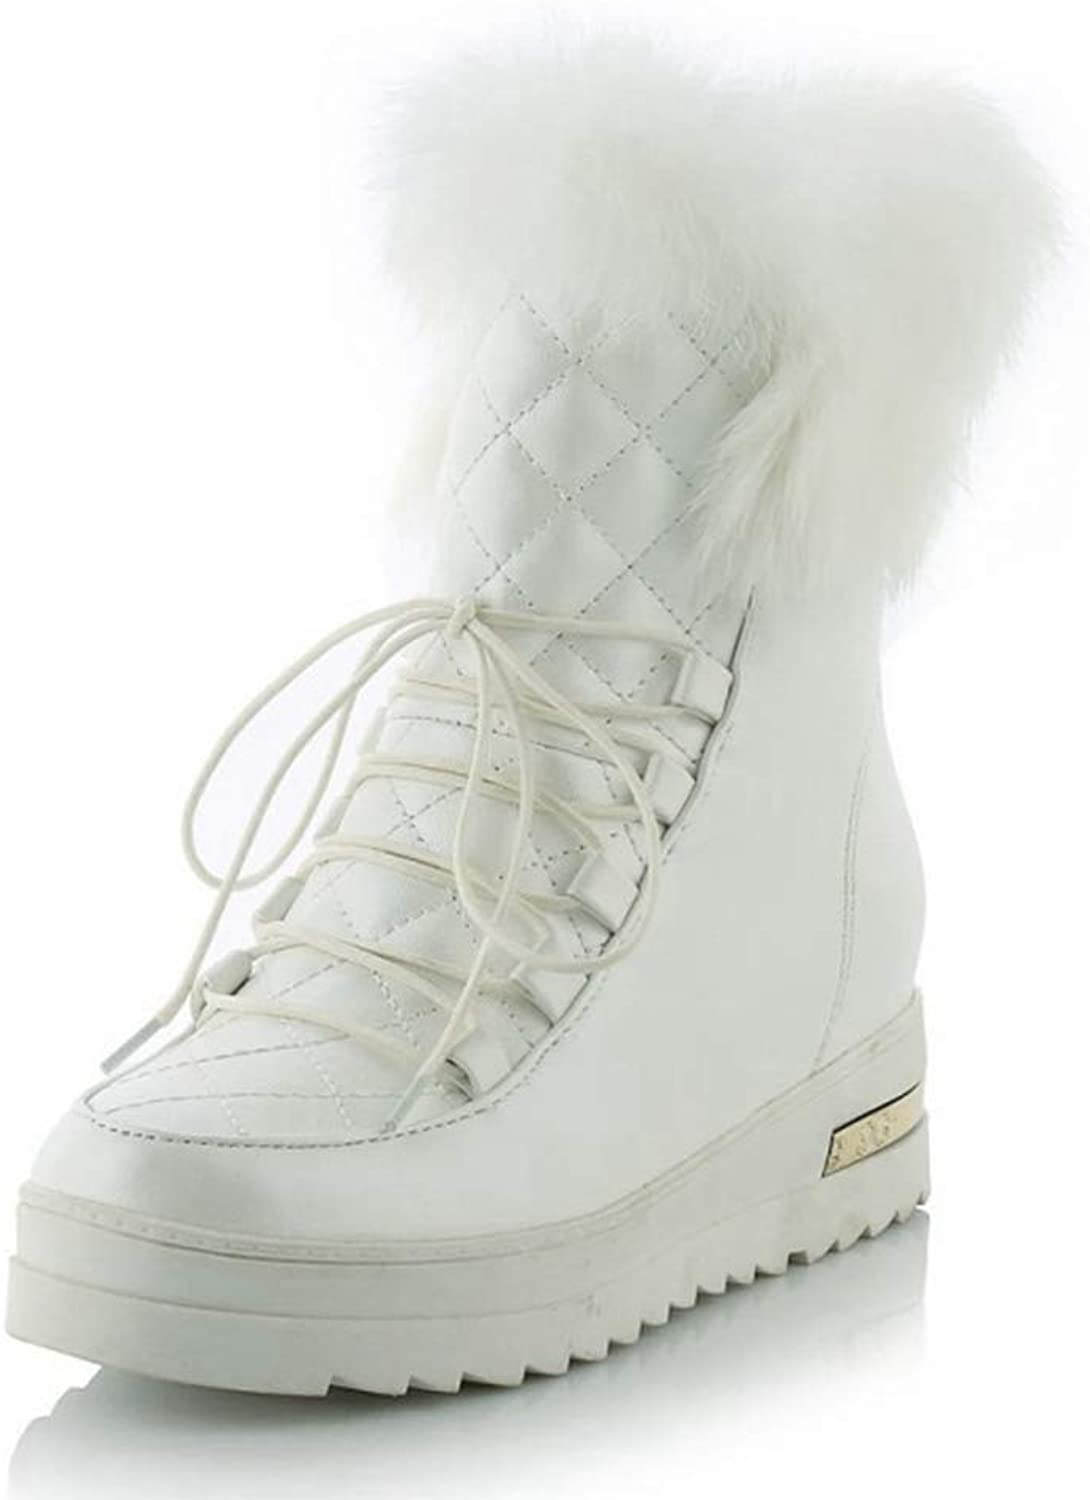 CYBLING Womens Fur Lined Snow Boots Winter Lace Up Waterproof Wedge Ankle Booties shoes